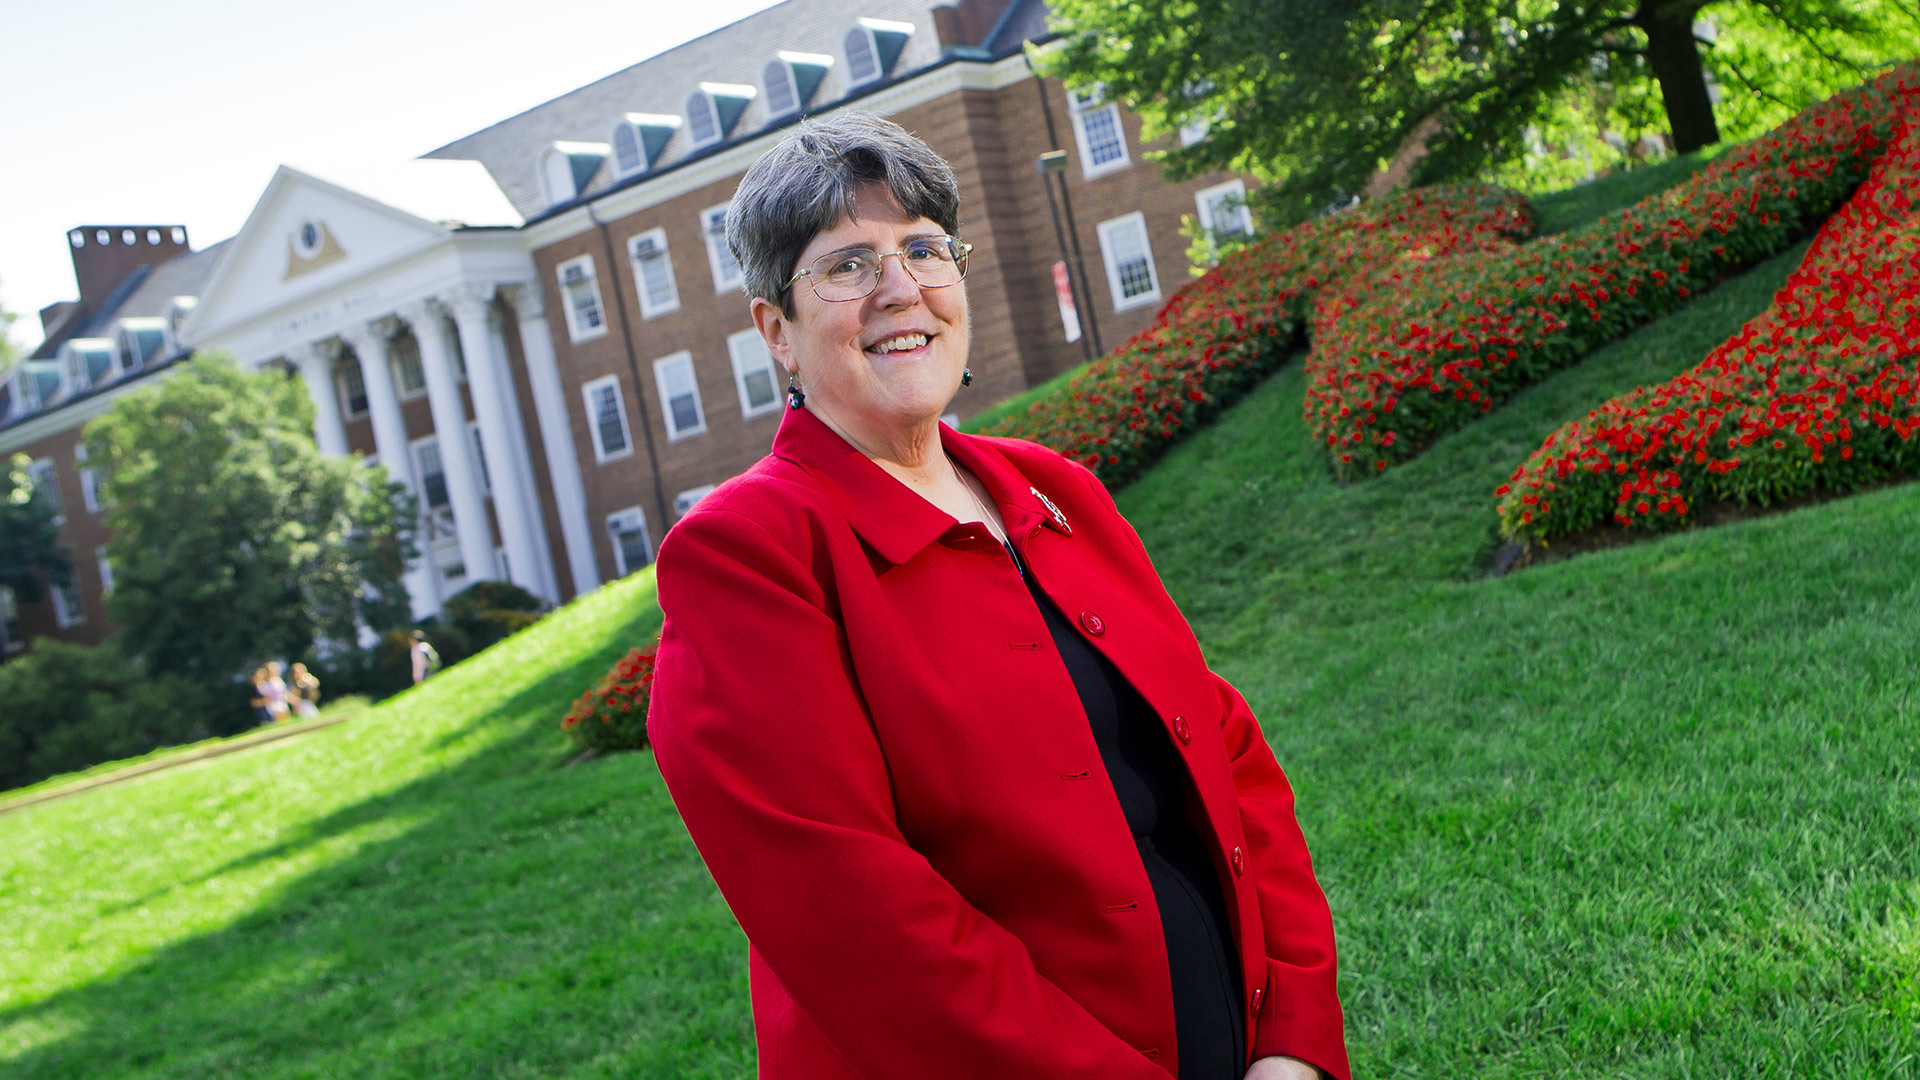 UMD Archivist, at Retirement, Looks Back at Looking Back